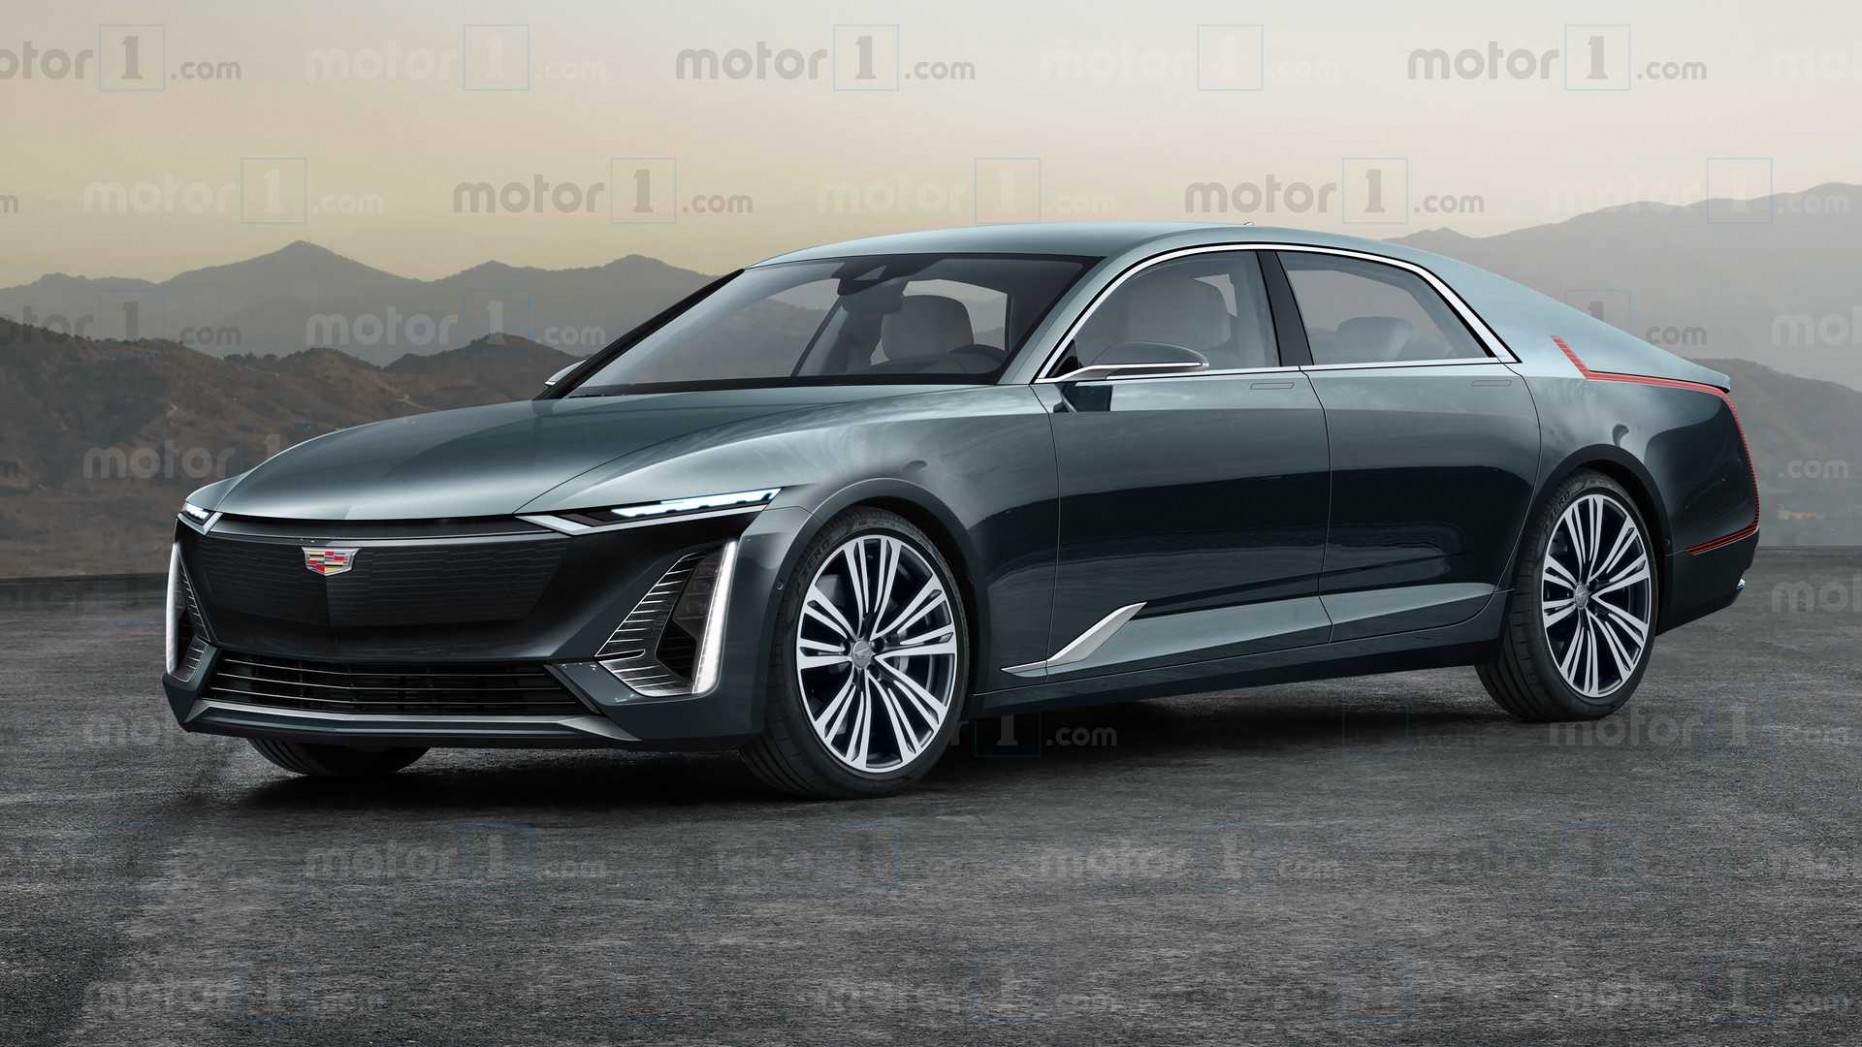 Release What Cars Will Cadillac Make In 2022